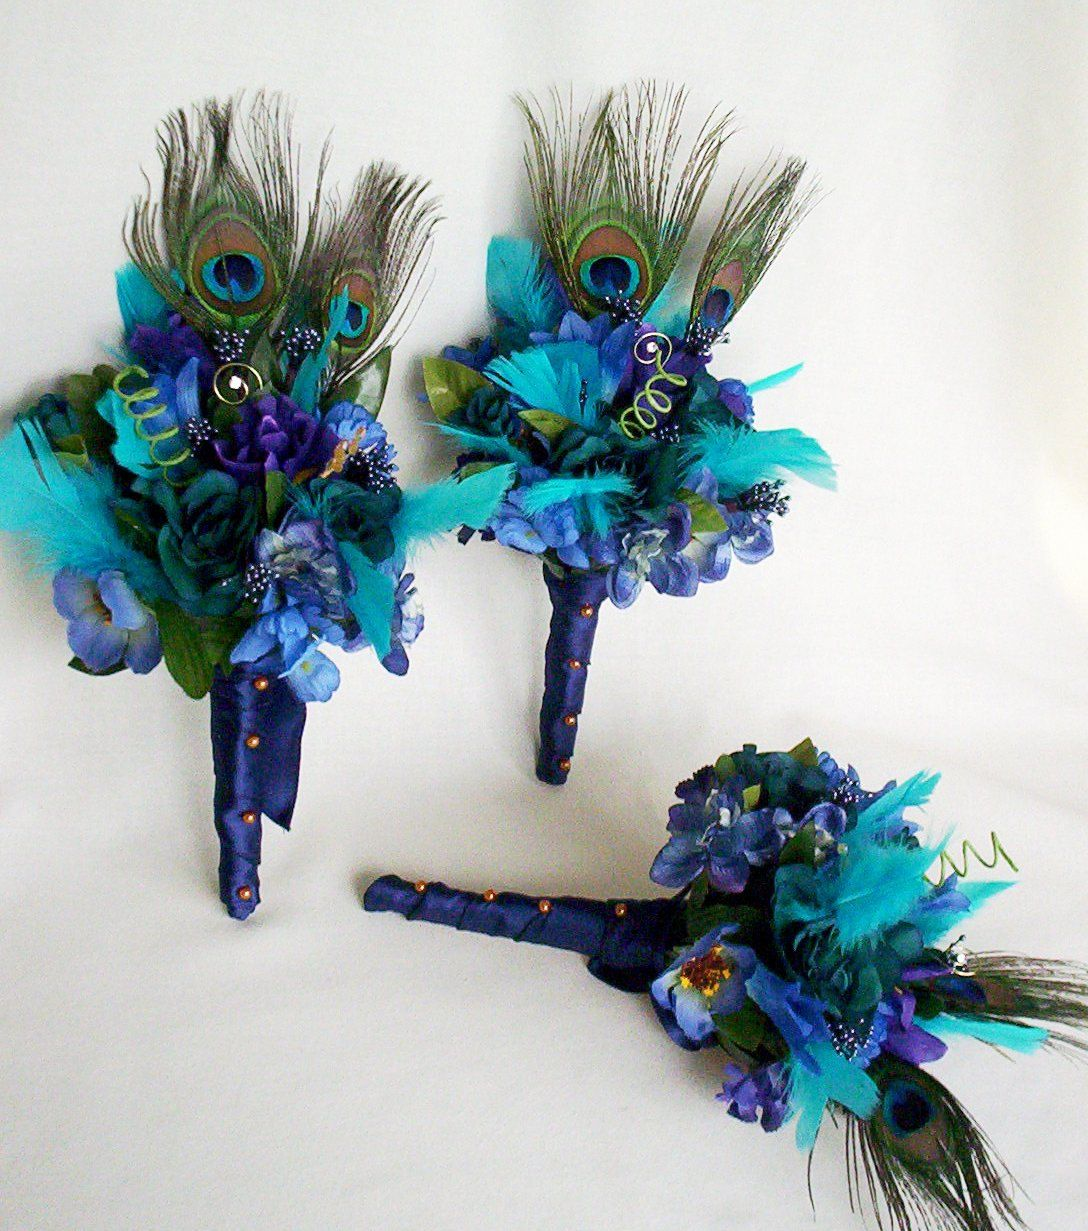 Peacock Wedding Ideas Etsy: Peacock Turquoise Bridal Bouquets Custom -3rd- Payment For